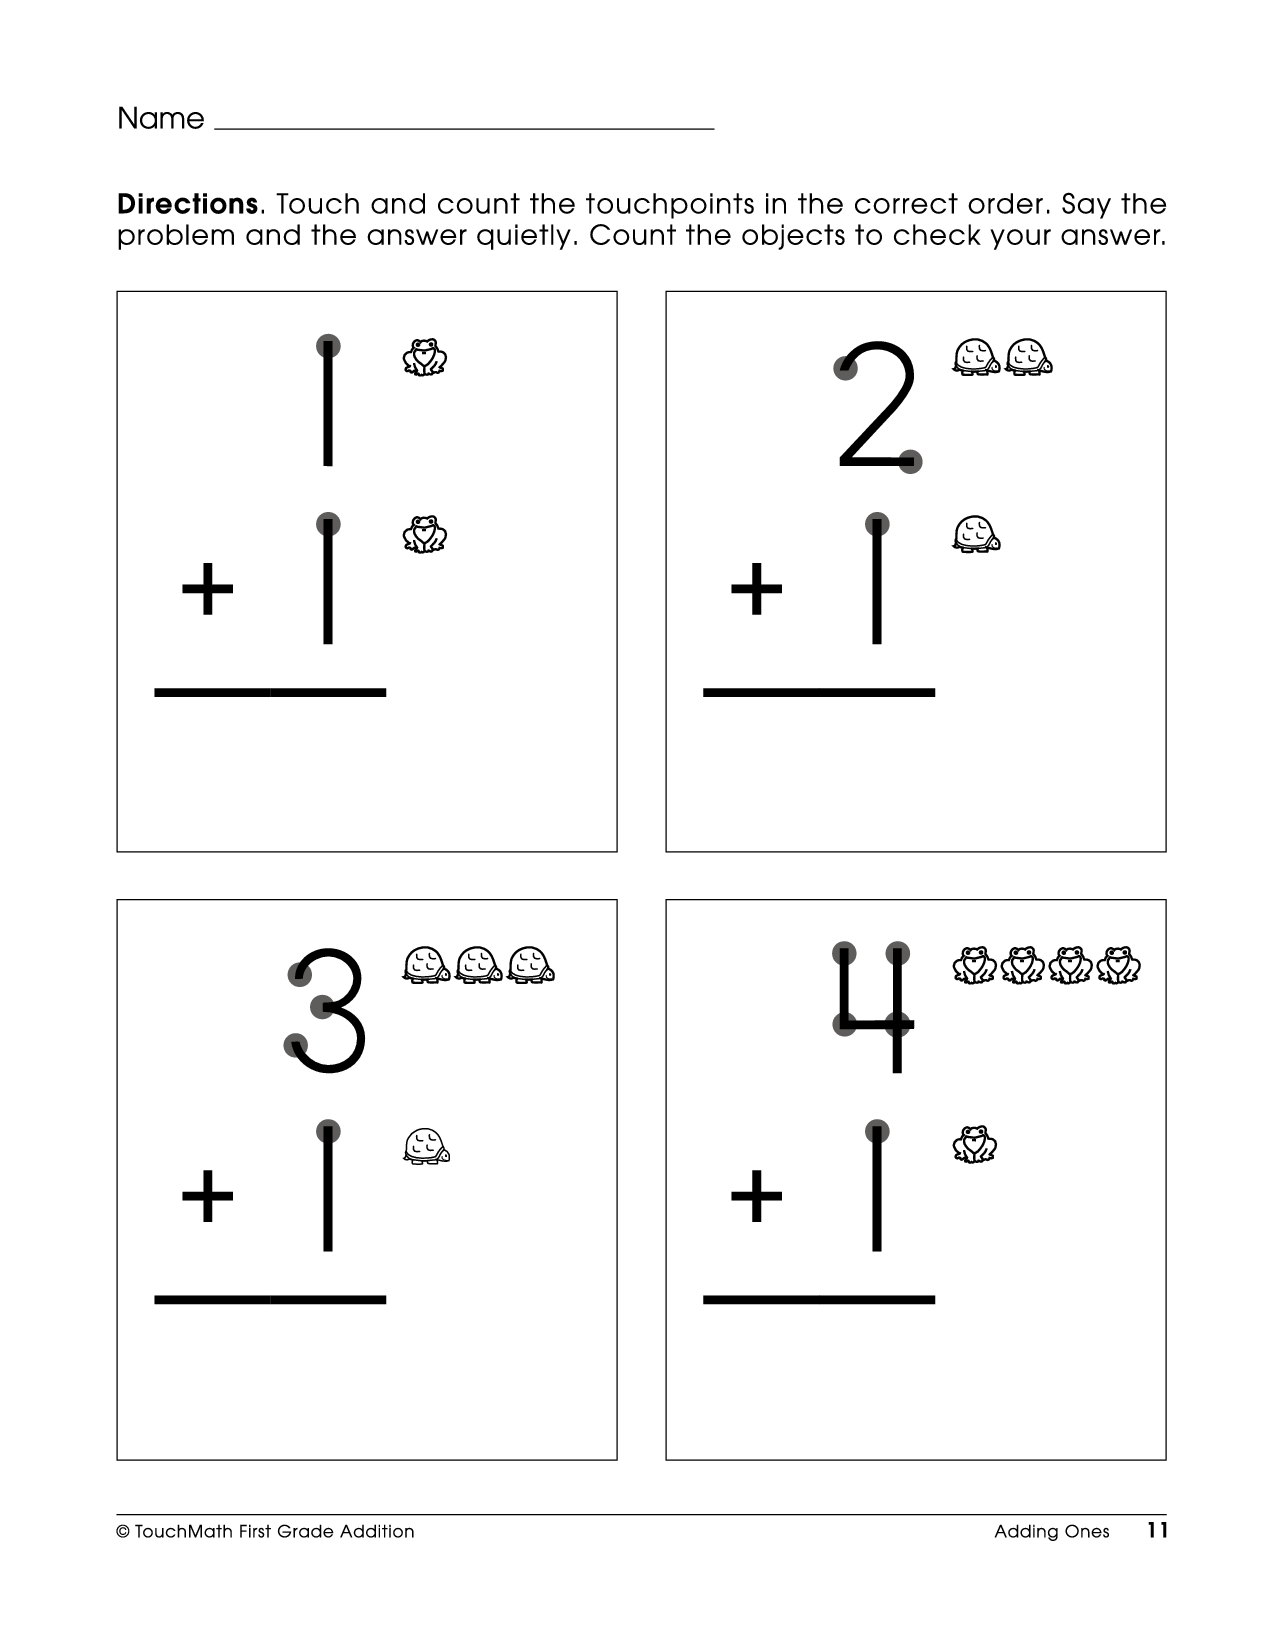 Touch Point Math Worksheet This Is How I Taught Myself To Add Printable TouchMath Subtraction Sheets Touch Point Math Worksheet This Is How I Taught Myself To Add!!